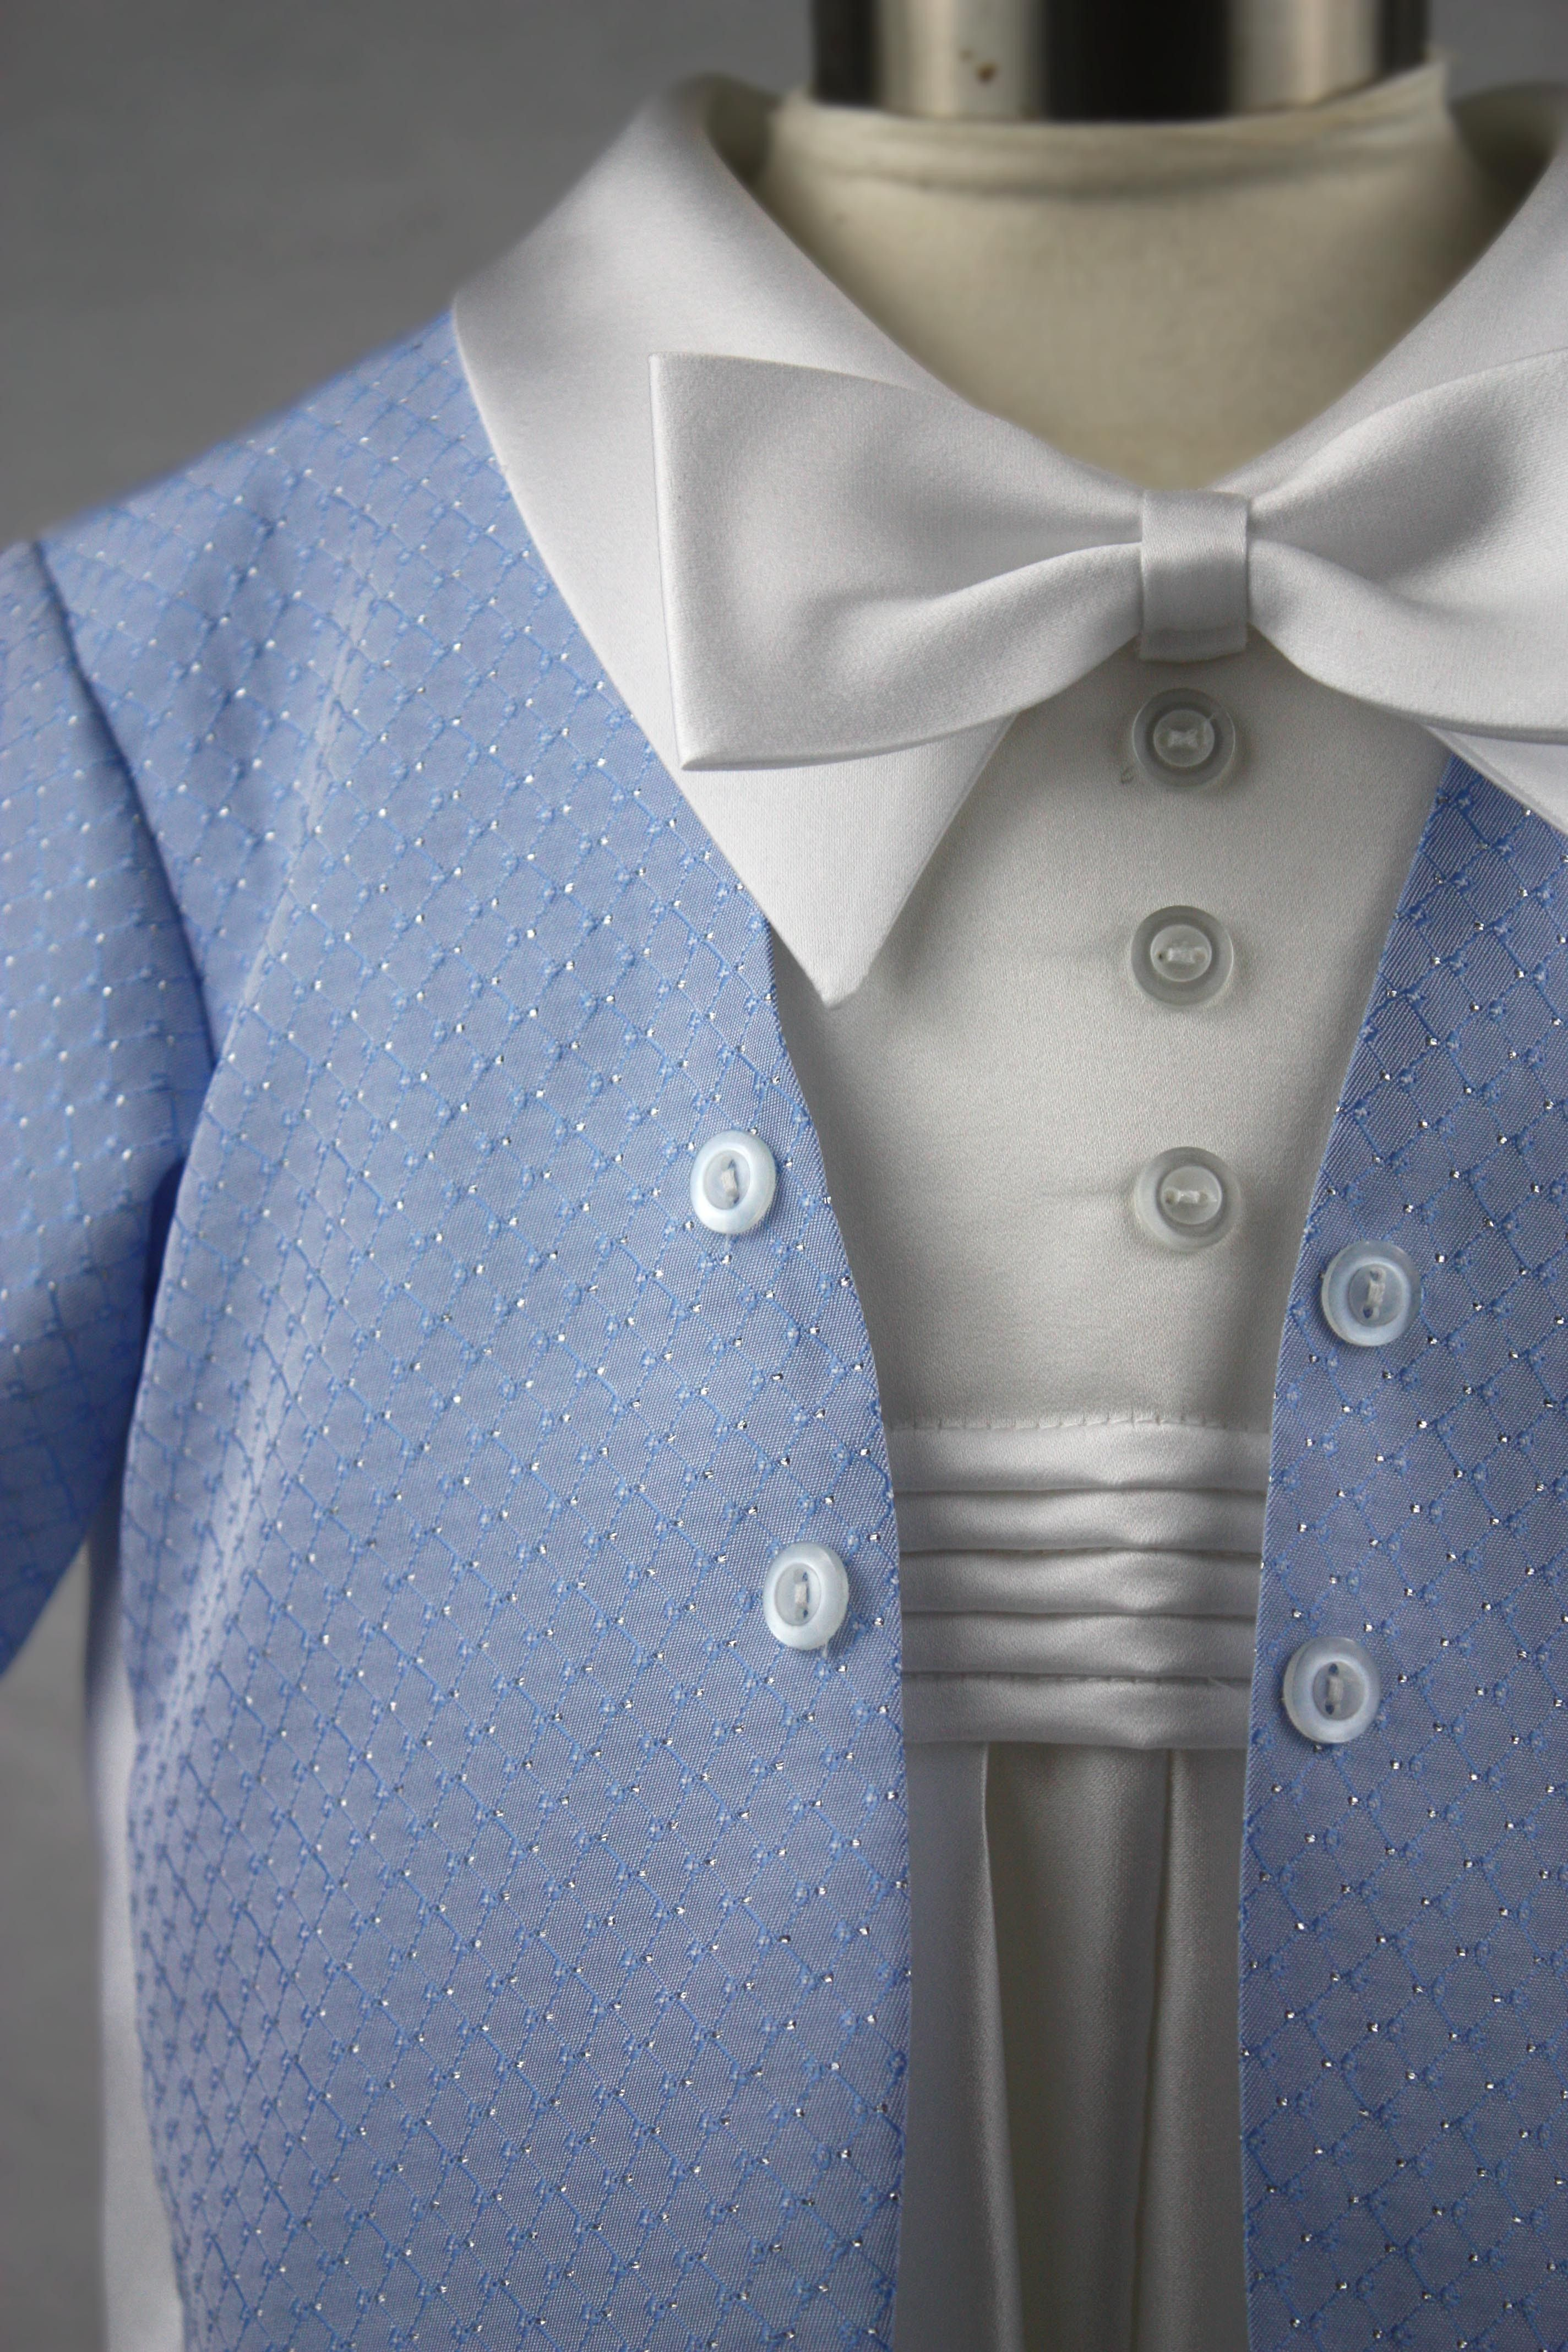 Have a christening coming up? Check out our adorable christening ...